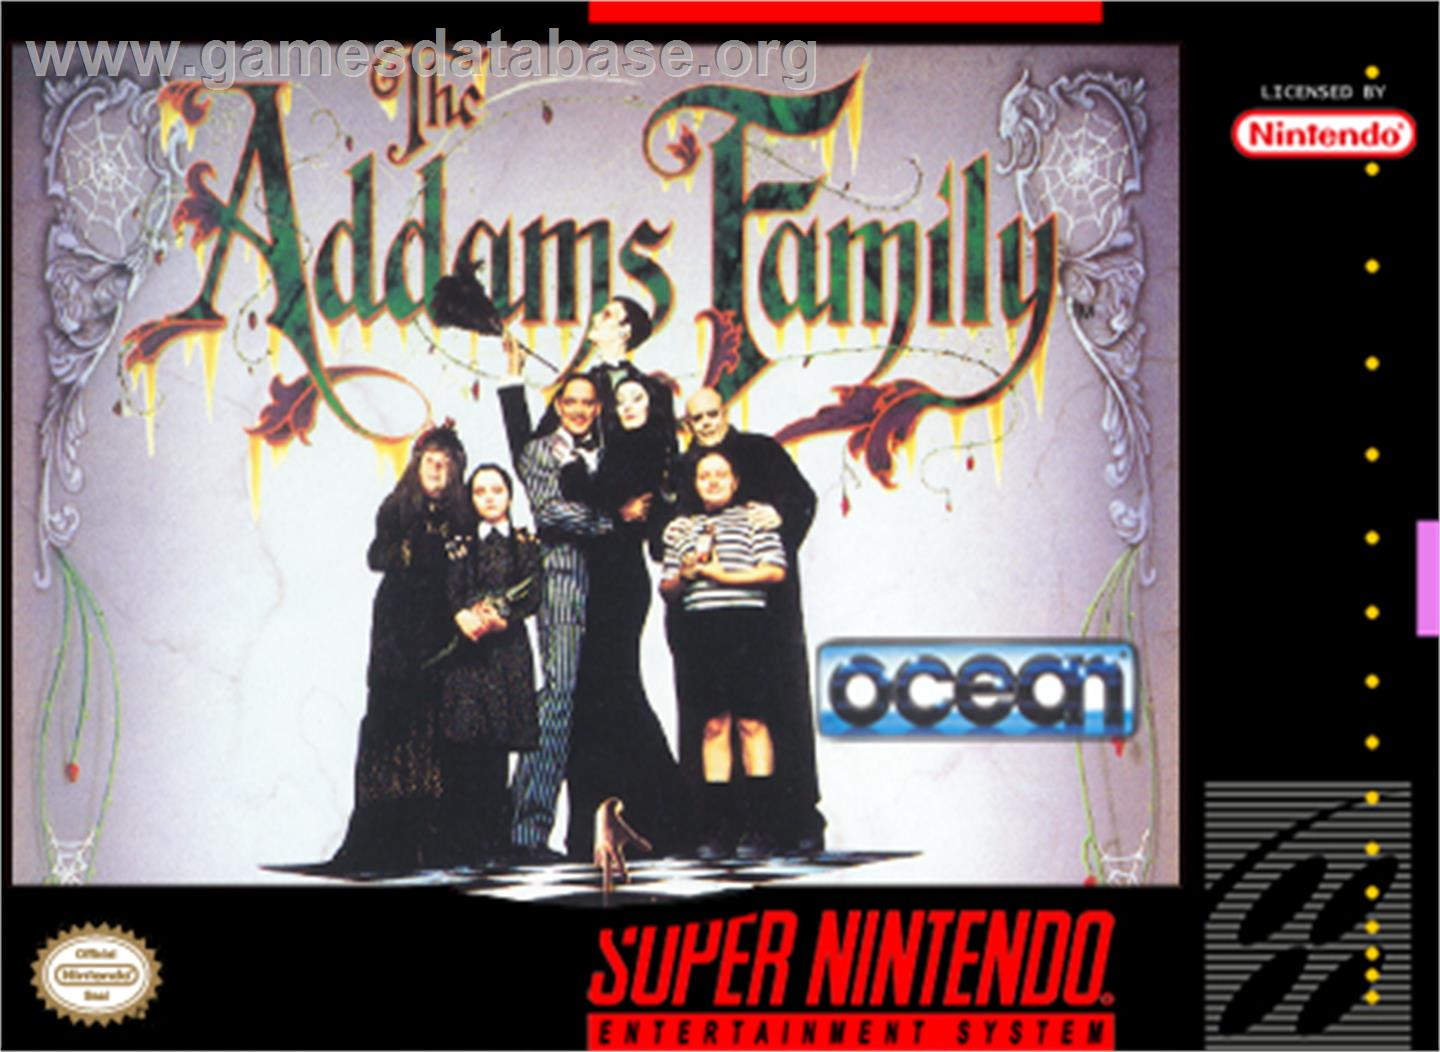 The Addams Family Nintendo Snes Games Database